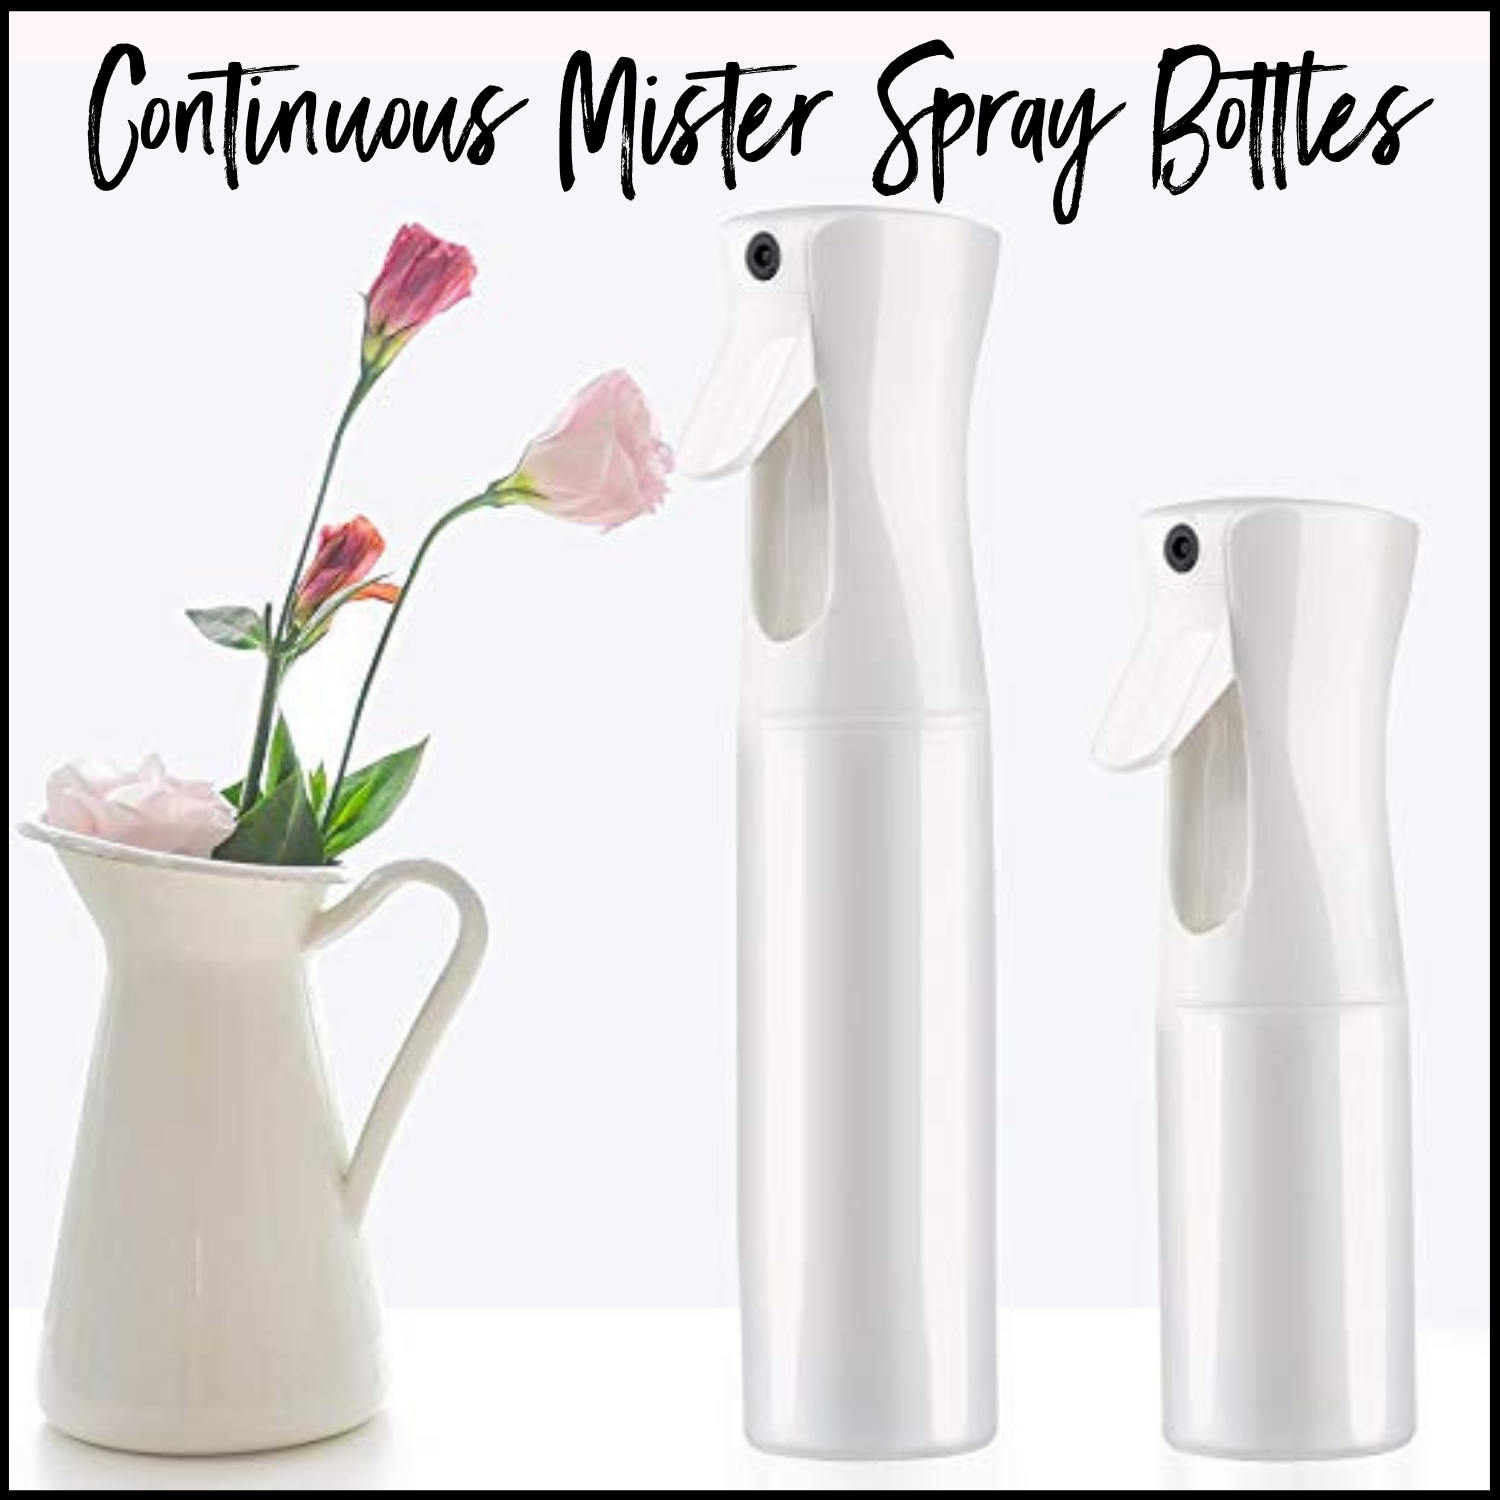 Continuous Mister Spray Bottles